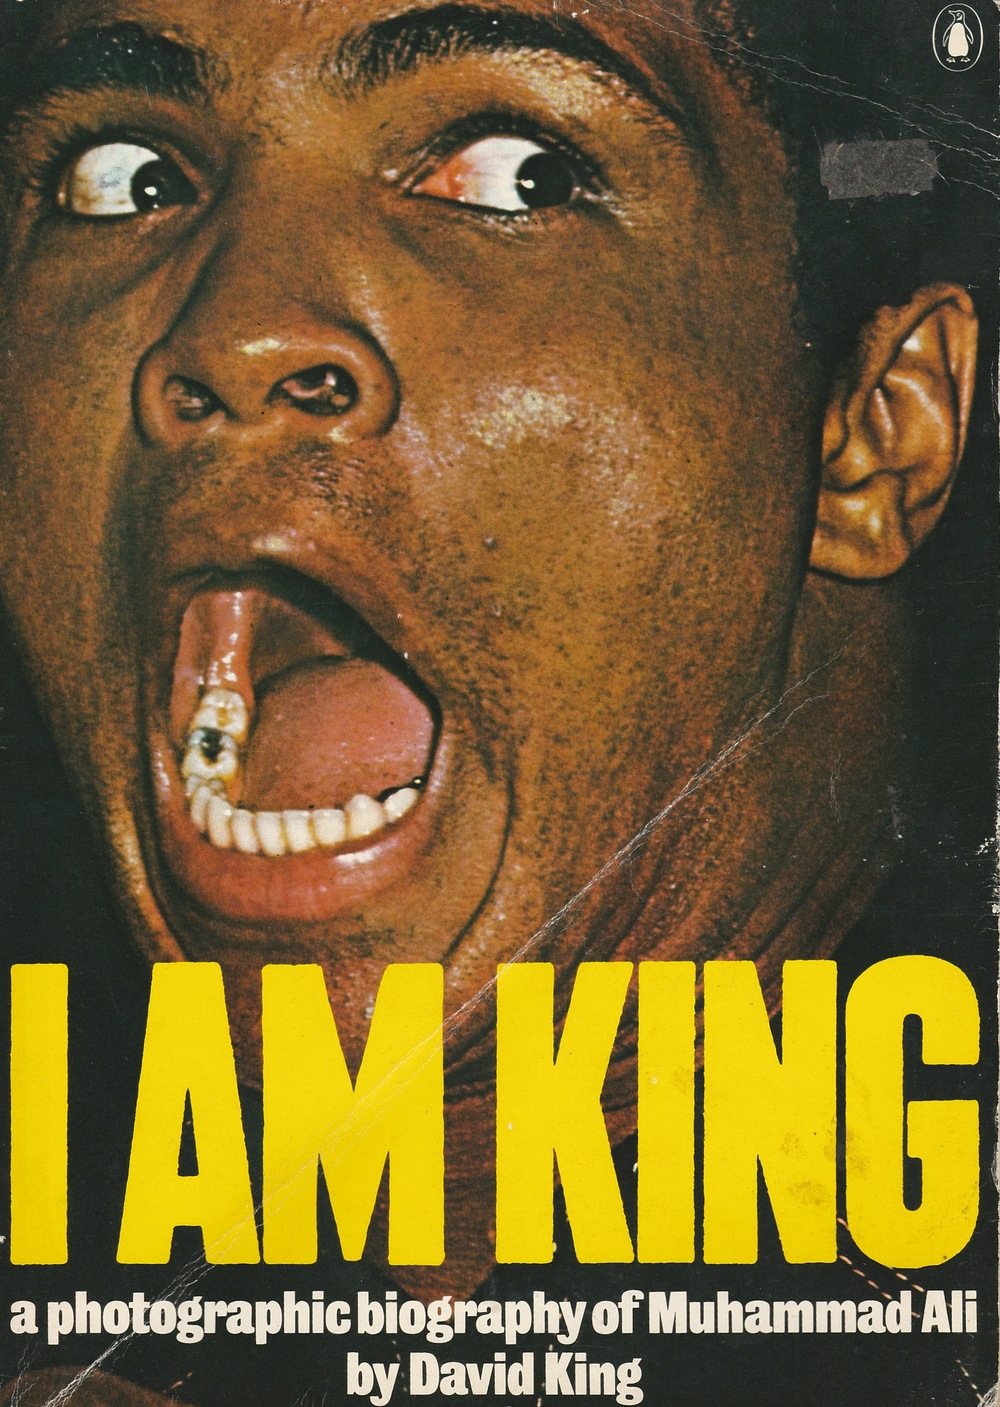 """King was born in 1943, and studied at the London School of Printing and Graphic Arts (now London College of Printing) under Robin Fior, who describes King's approach as 'compare and contrast as a political stance'. As art editor of   The Sunday Times Magazine   from 1965-75, he collaborated with art director Michael Rand to create the new language of the supplement: features sporting dynamic picture cropping and processed graphic effects gave the magazine a cinematic feel. King forged important friendships with other   Sunday Times   contributors. With Francis Wyndham he compiled the first pictorial biography of Leon Trotsky (1972). King began supplying his own pictures to the   Sunday Times  , and an assignment with Muhammad Ali in 1974 resulted in the book   I am King  .""    Christopher Wilson,   First published in    Eye    no. 48 vol. 12, 2003"